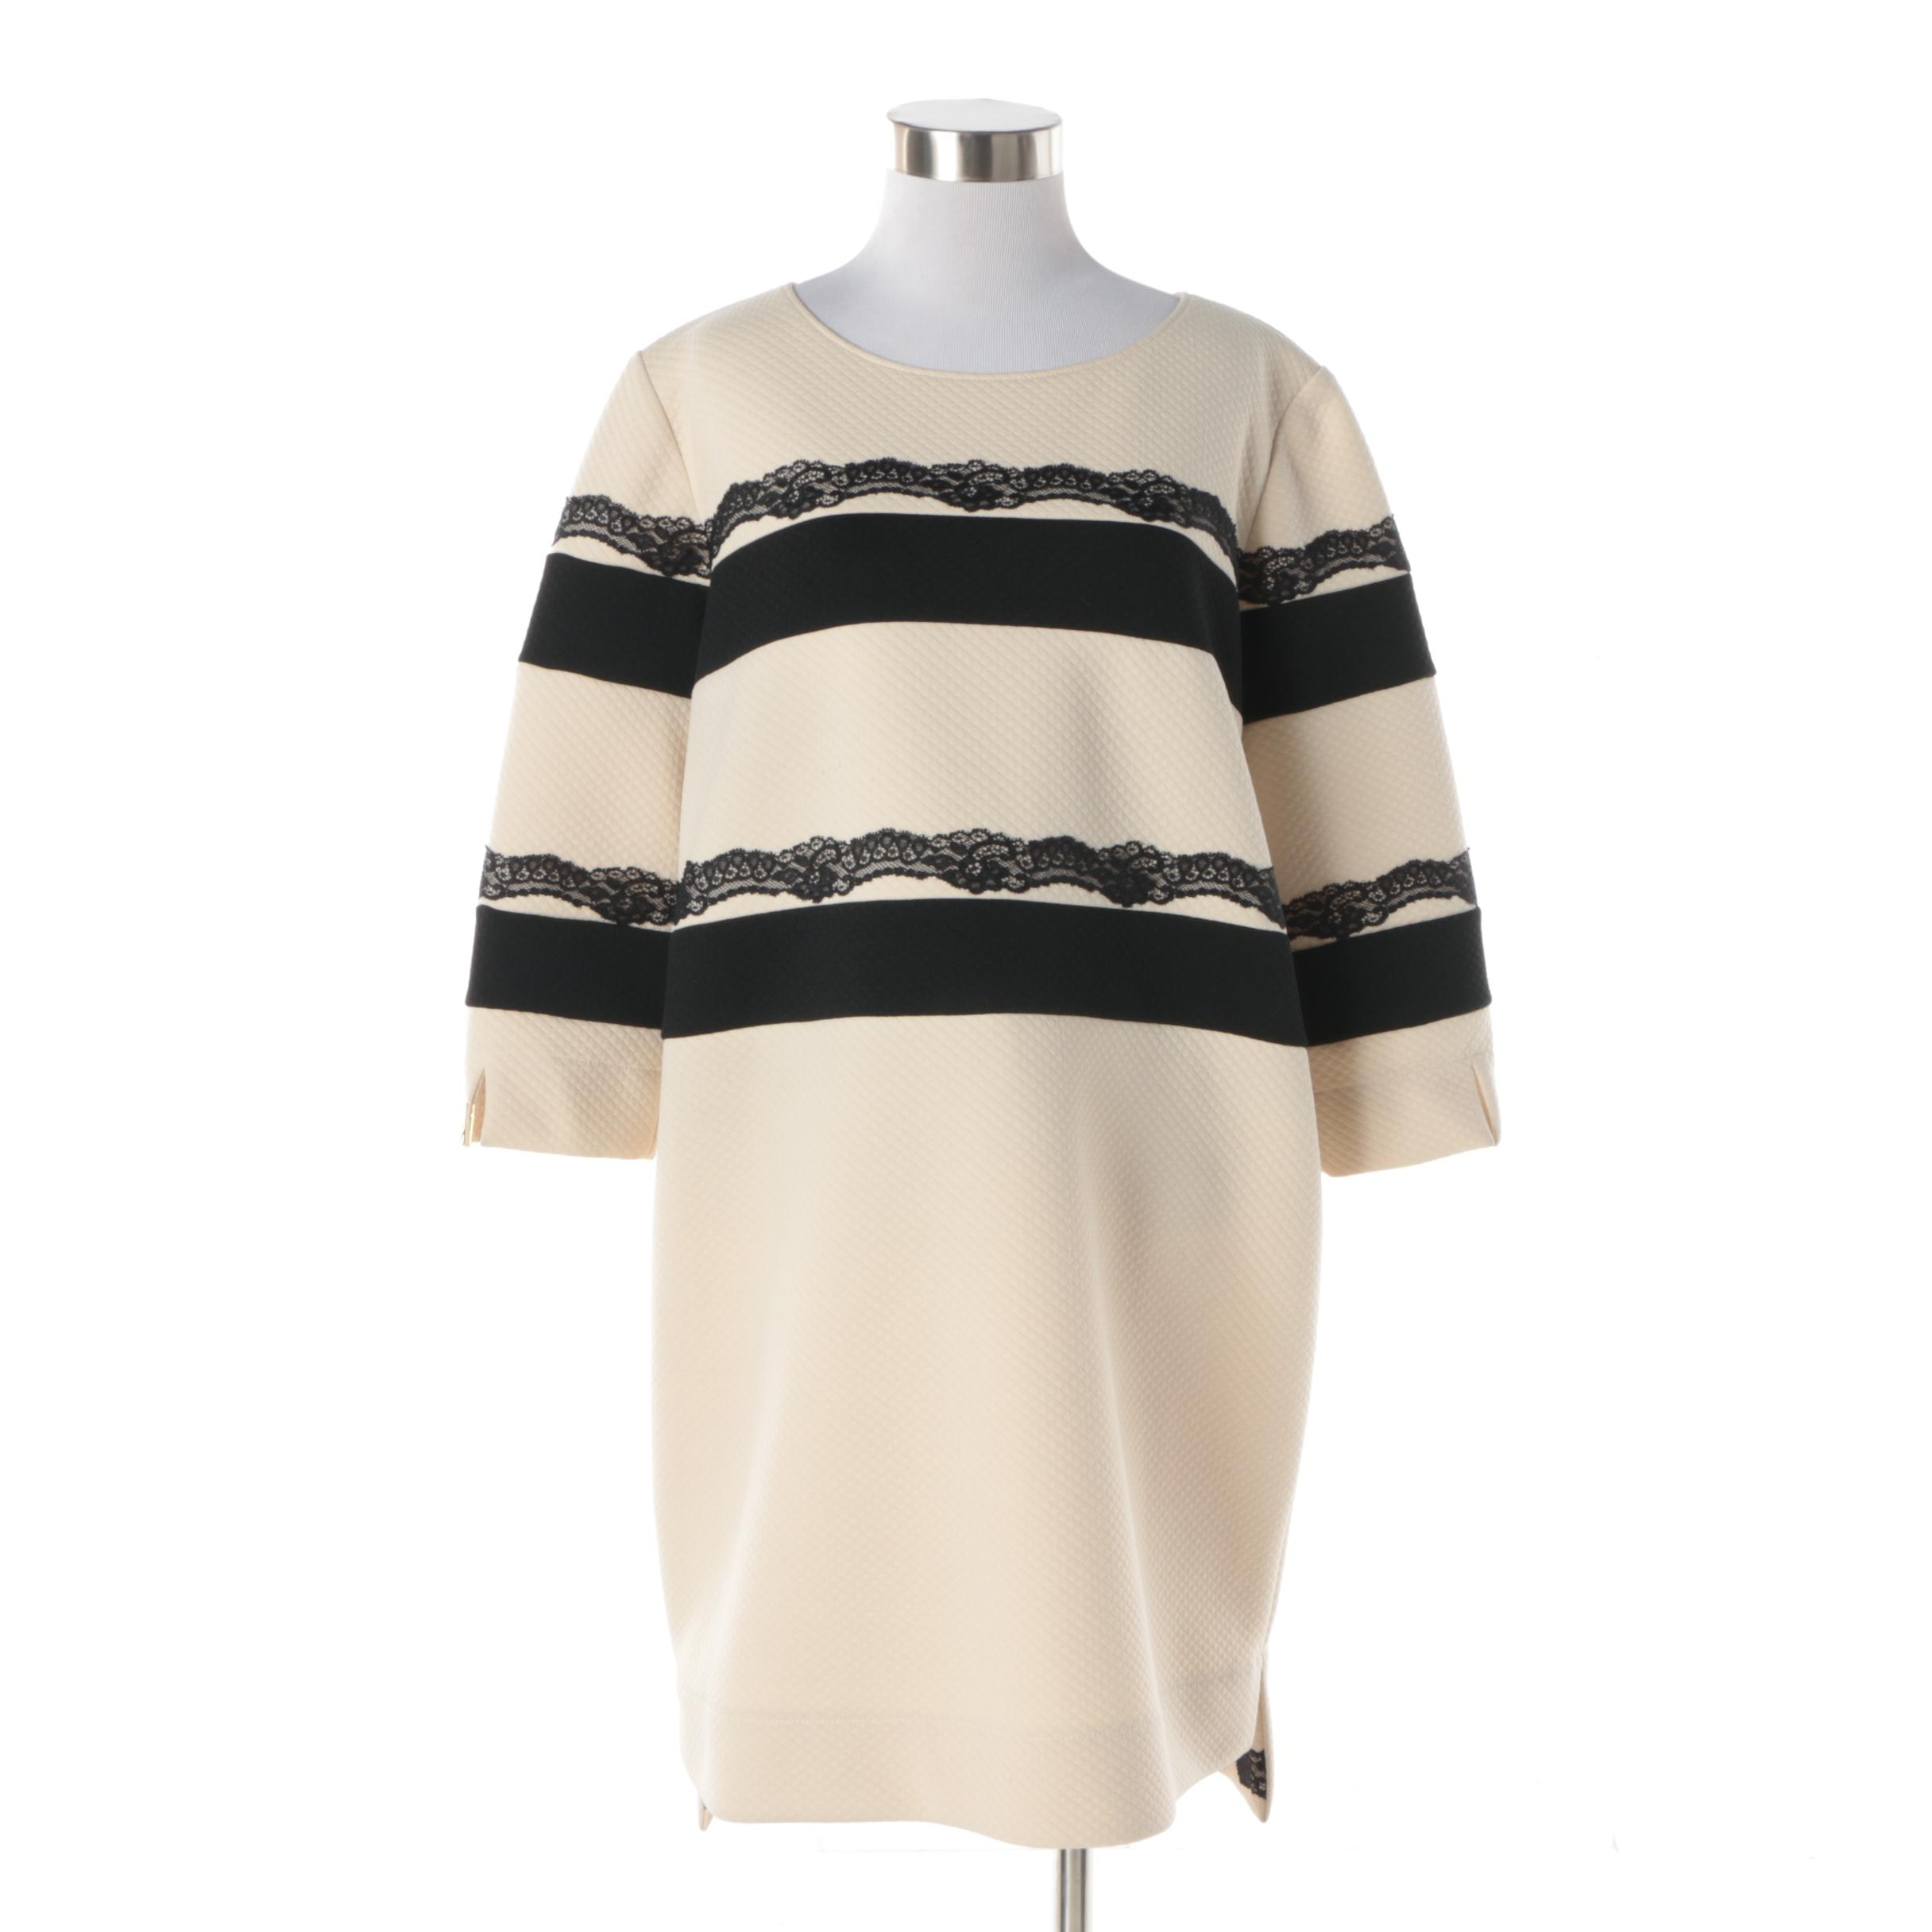 Cavalli Class Roberto Cavalli Cream Quilted Dress with Black Lace Accents